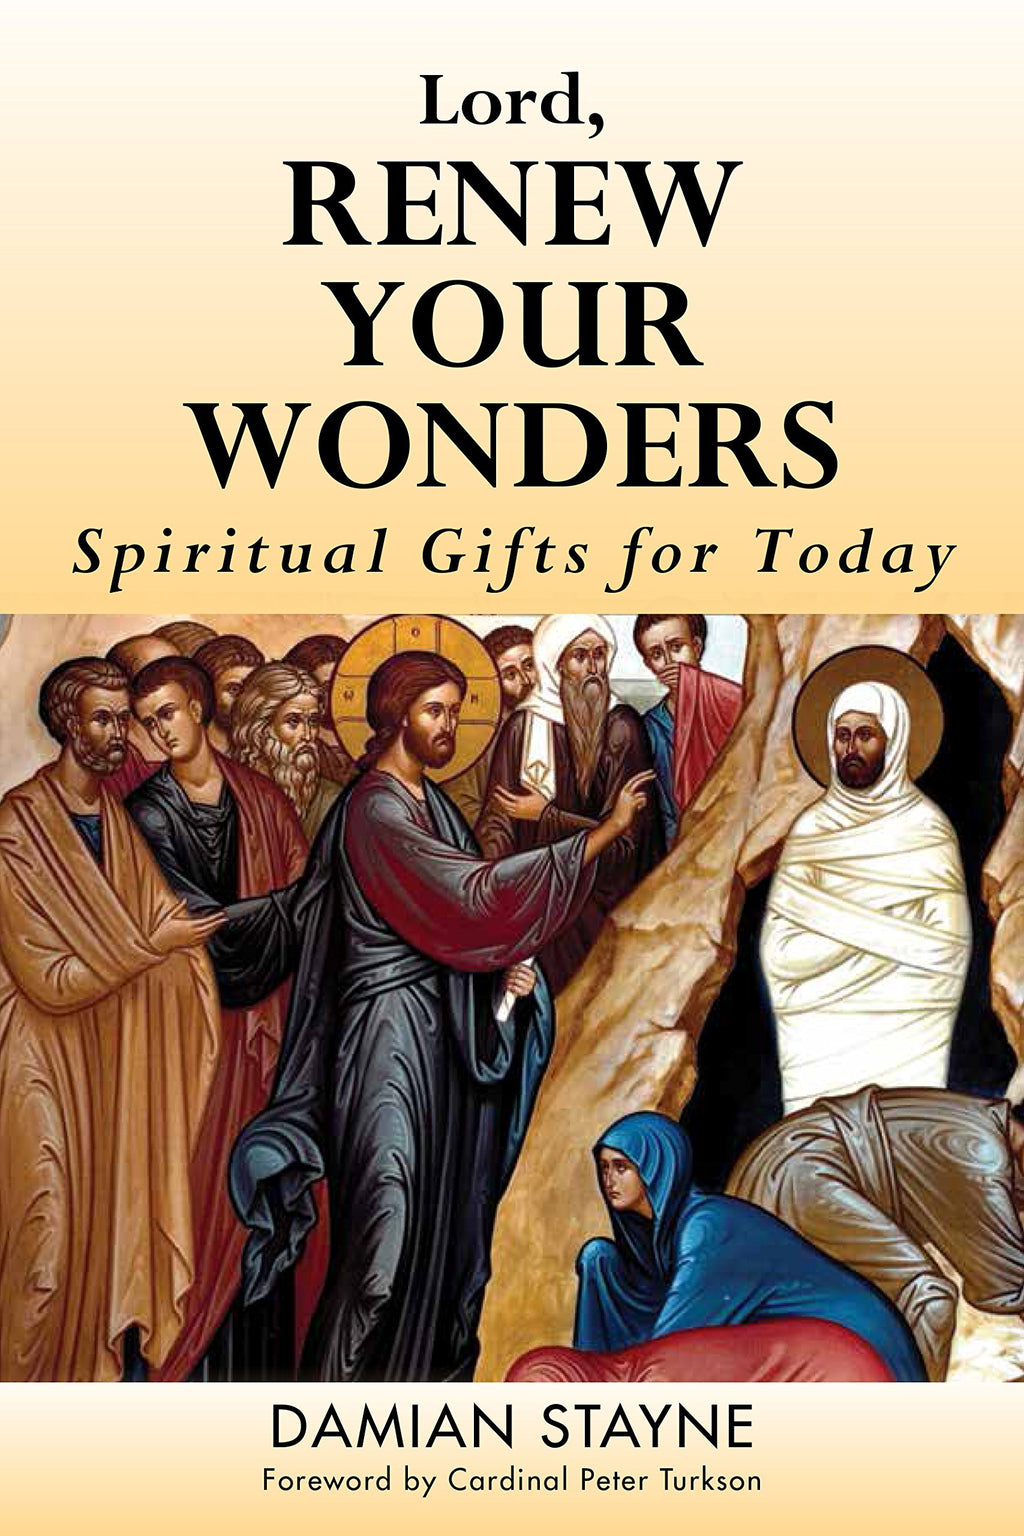 Lord, Renew Your Wonders: Spiritual Gifts for Today by Damian Stayne, Paperback - MGworld